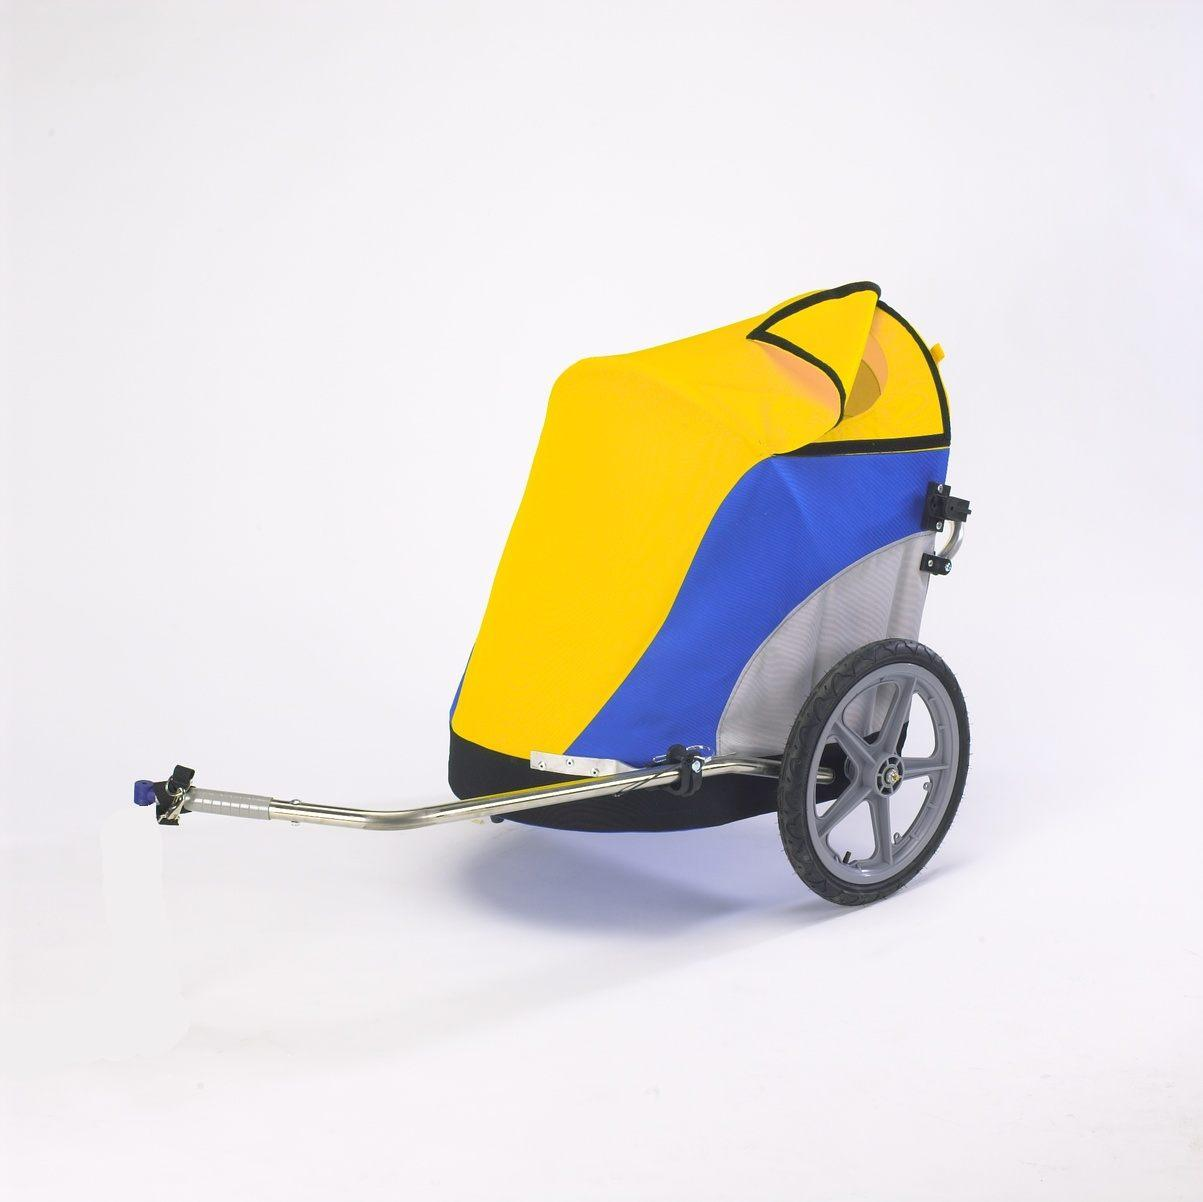 Wike City Cargo Shopper Bicycle Trailer Yellow